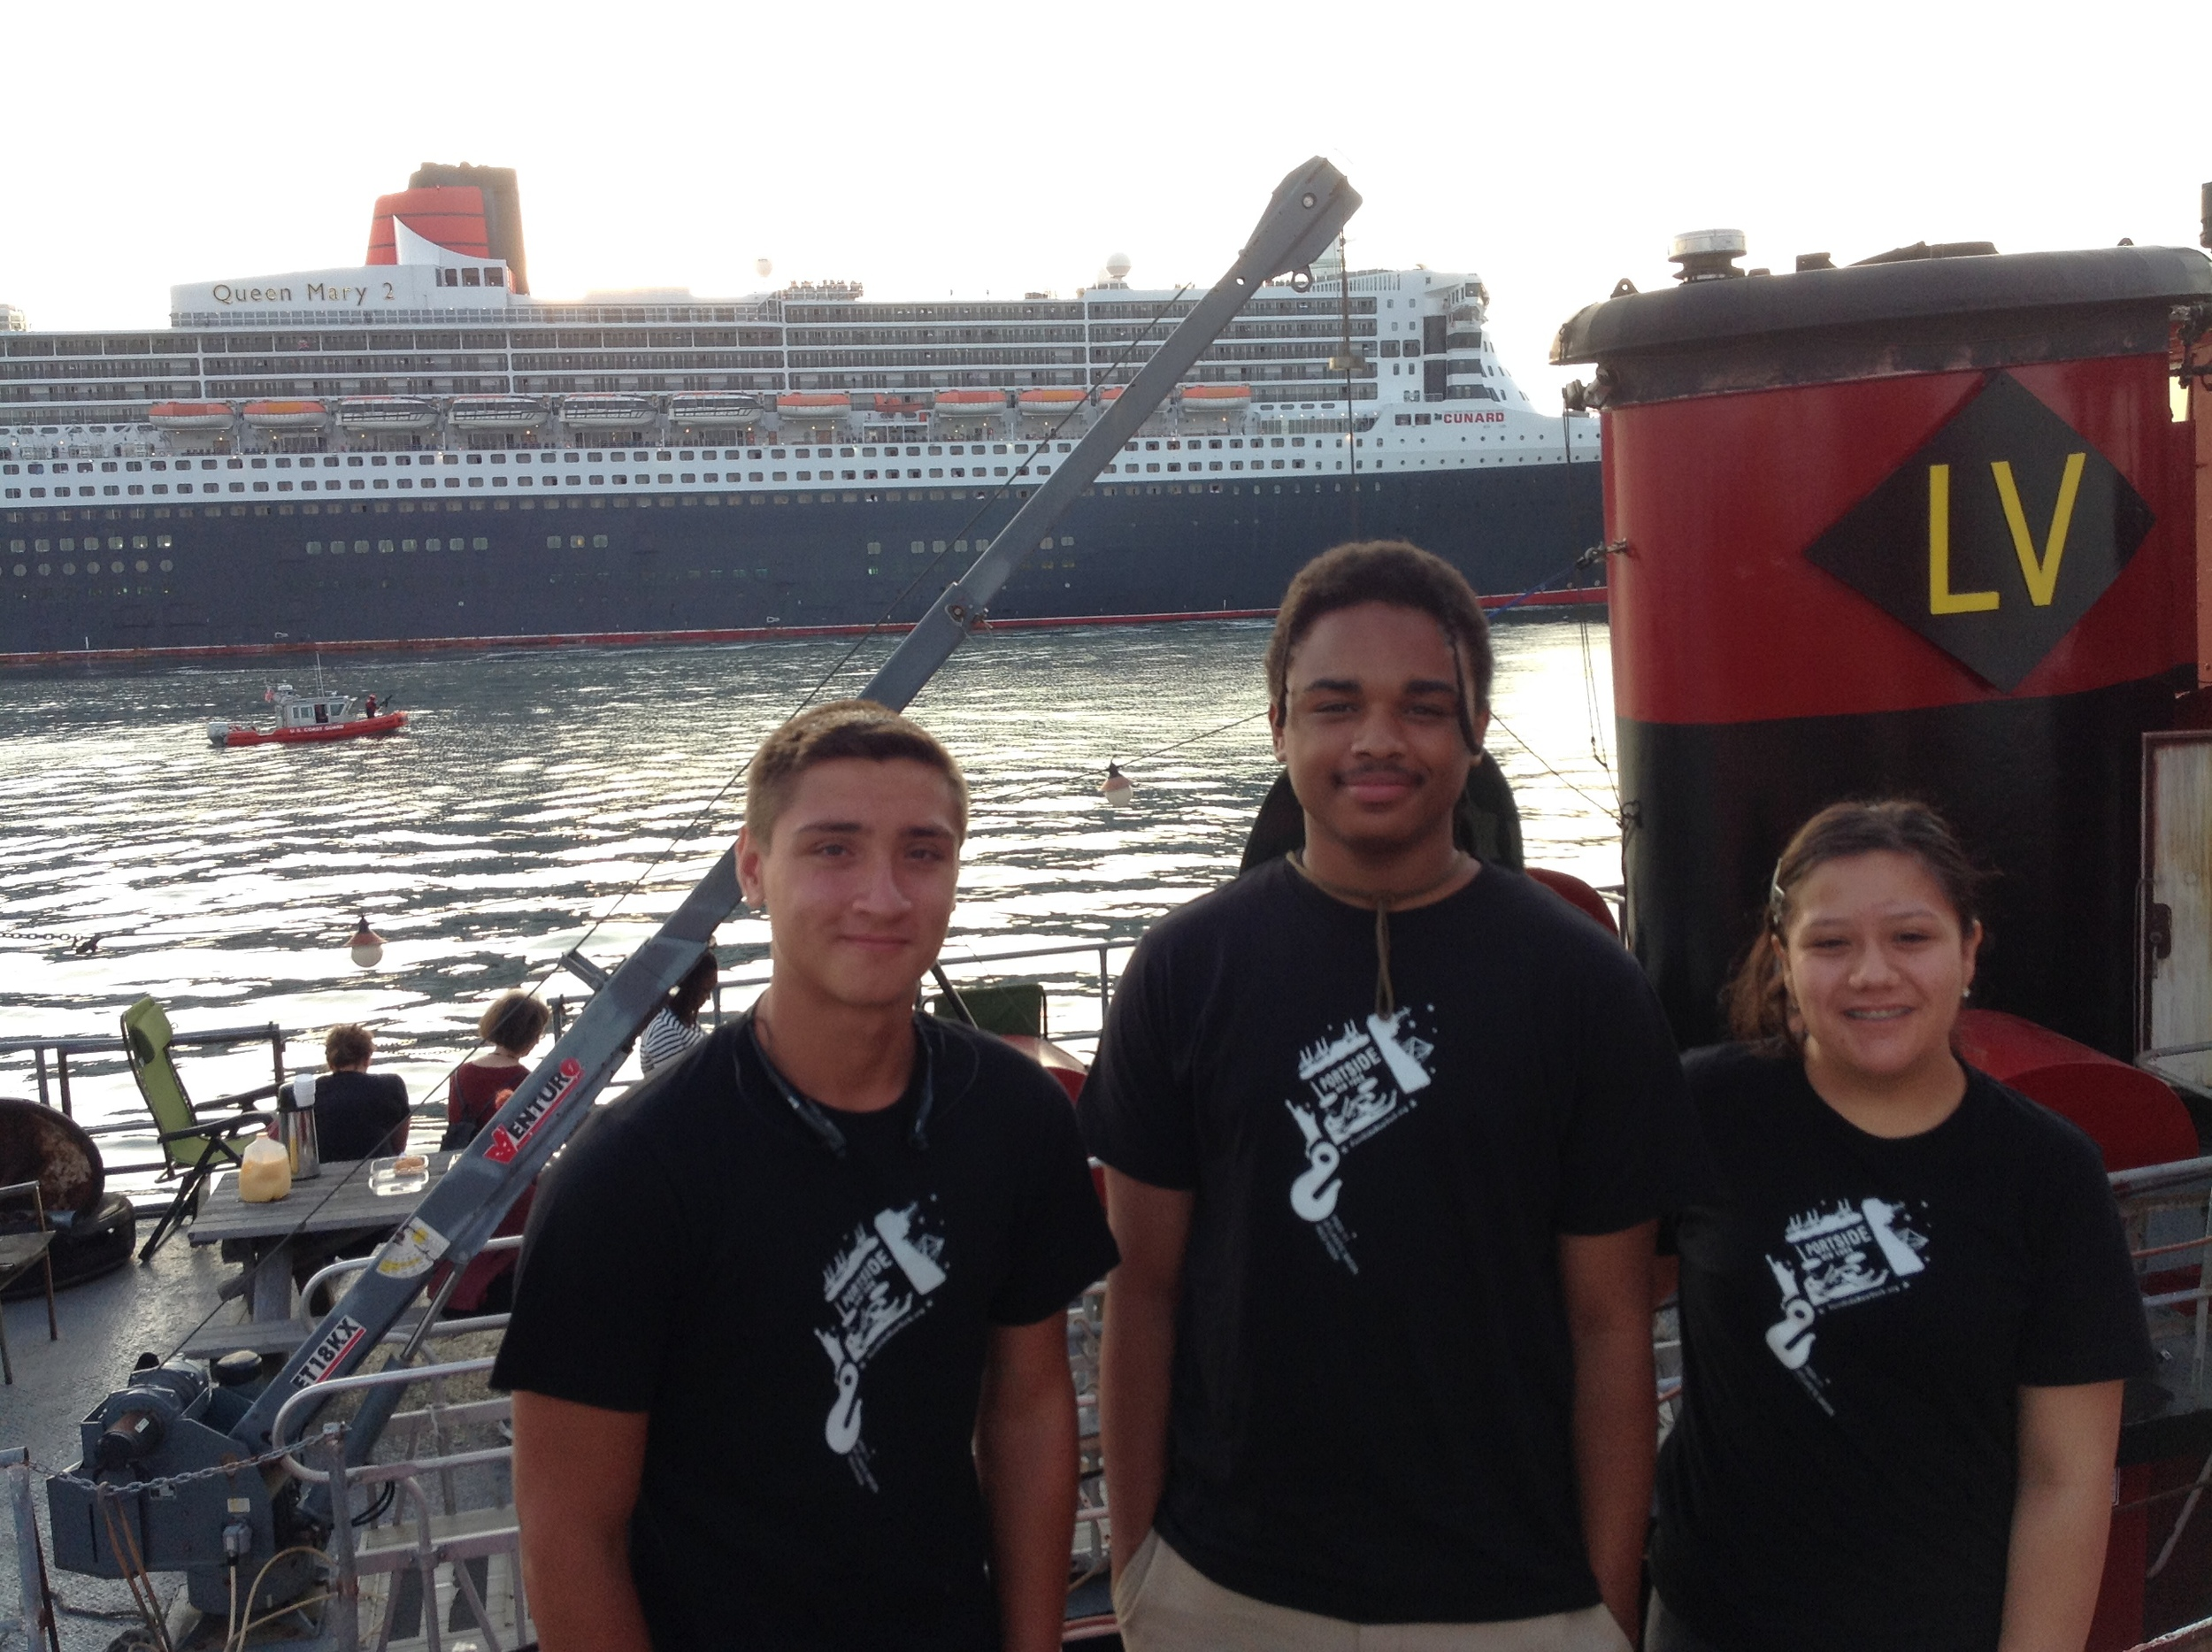 Carlos, Ashby, and Alyson during the Cunard 75th anniversary parade